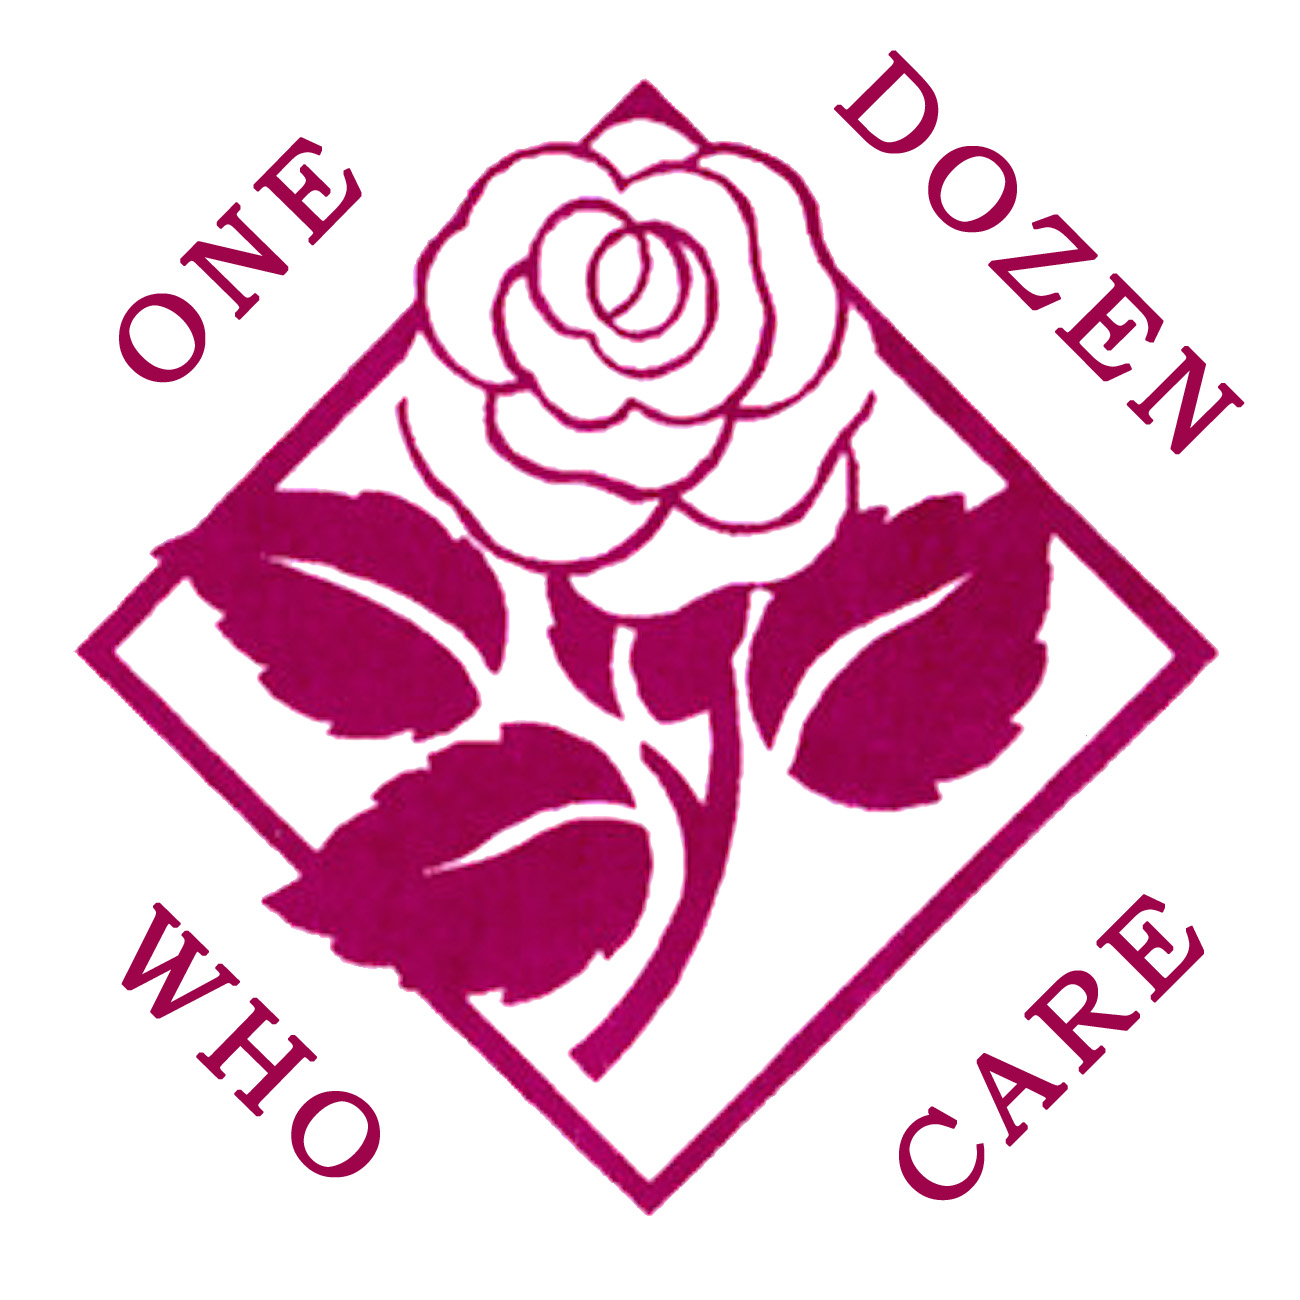 One Dozen Who Care